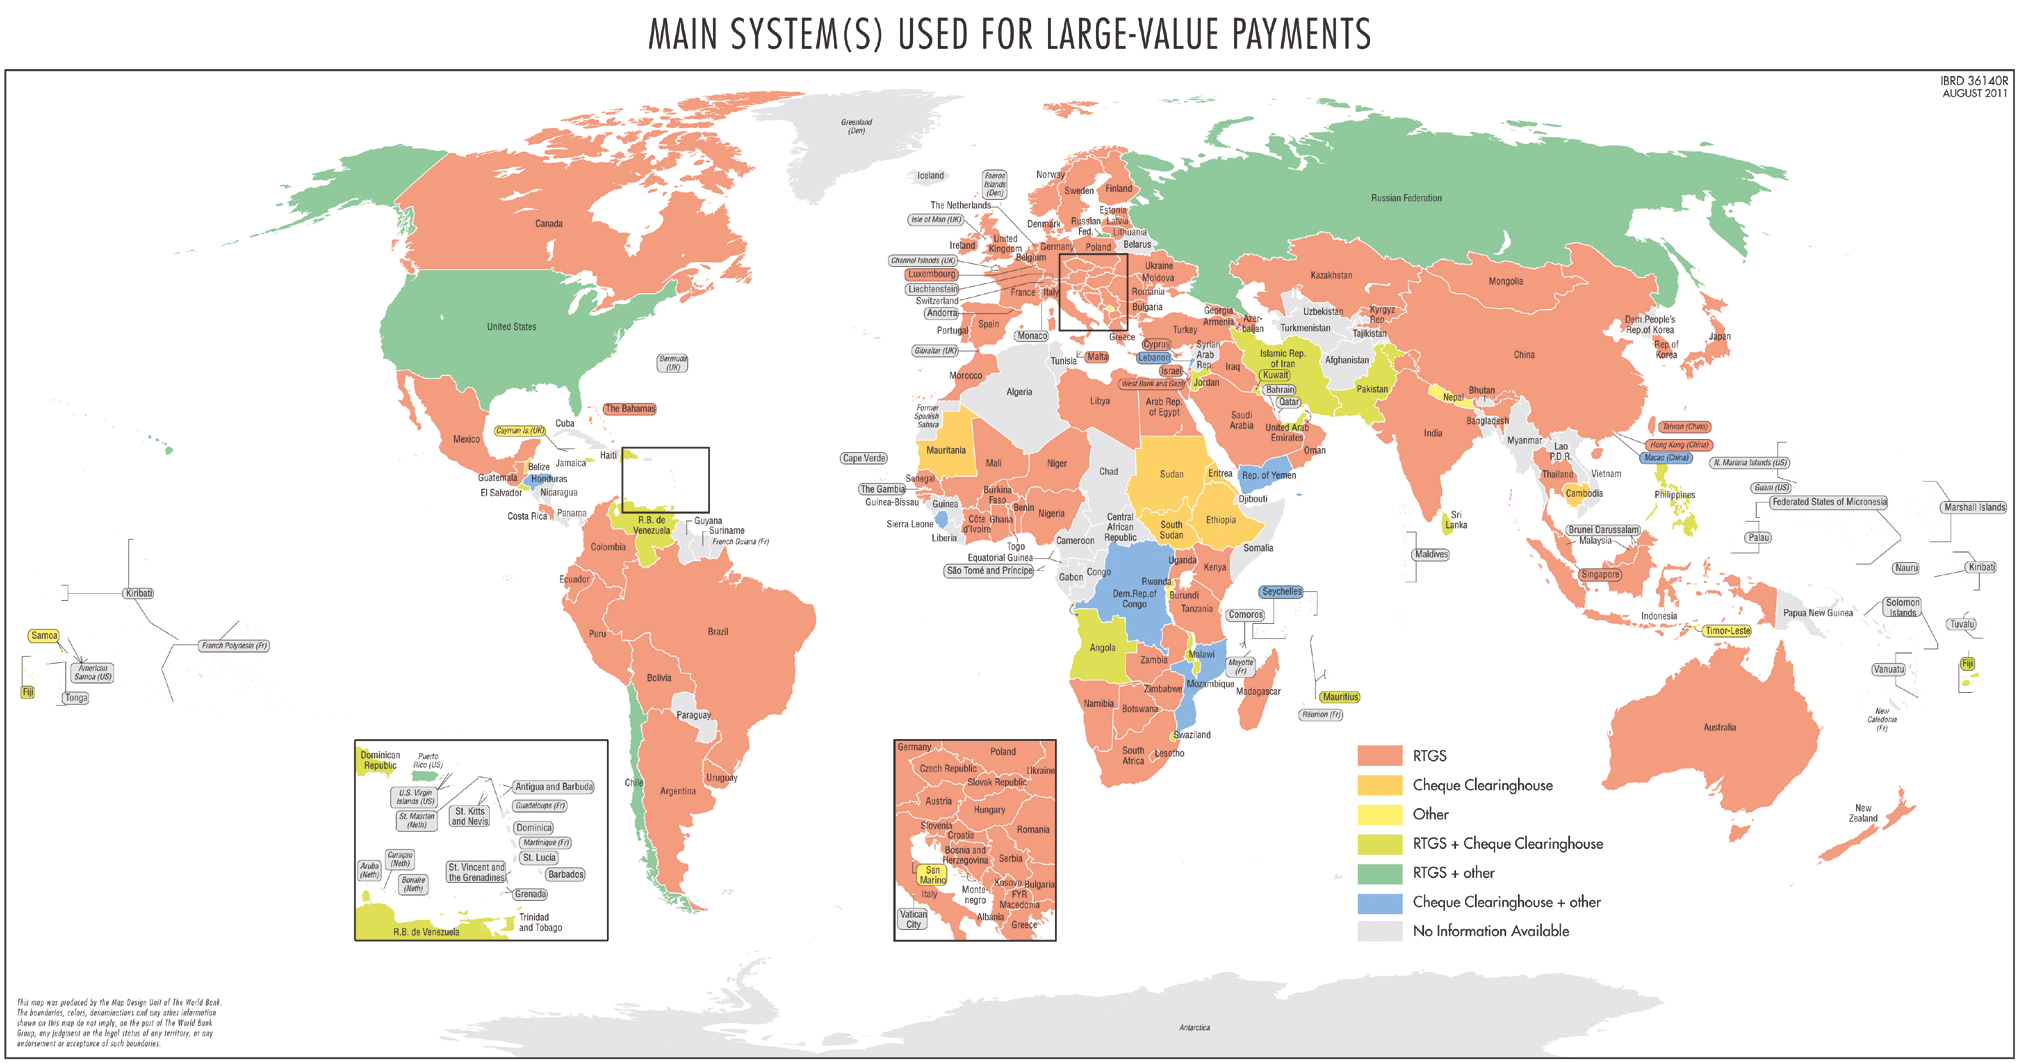 World map with main systems used for large value payments